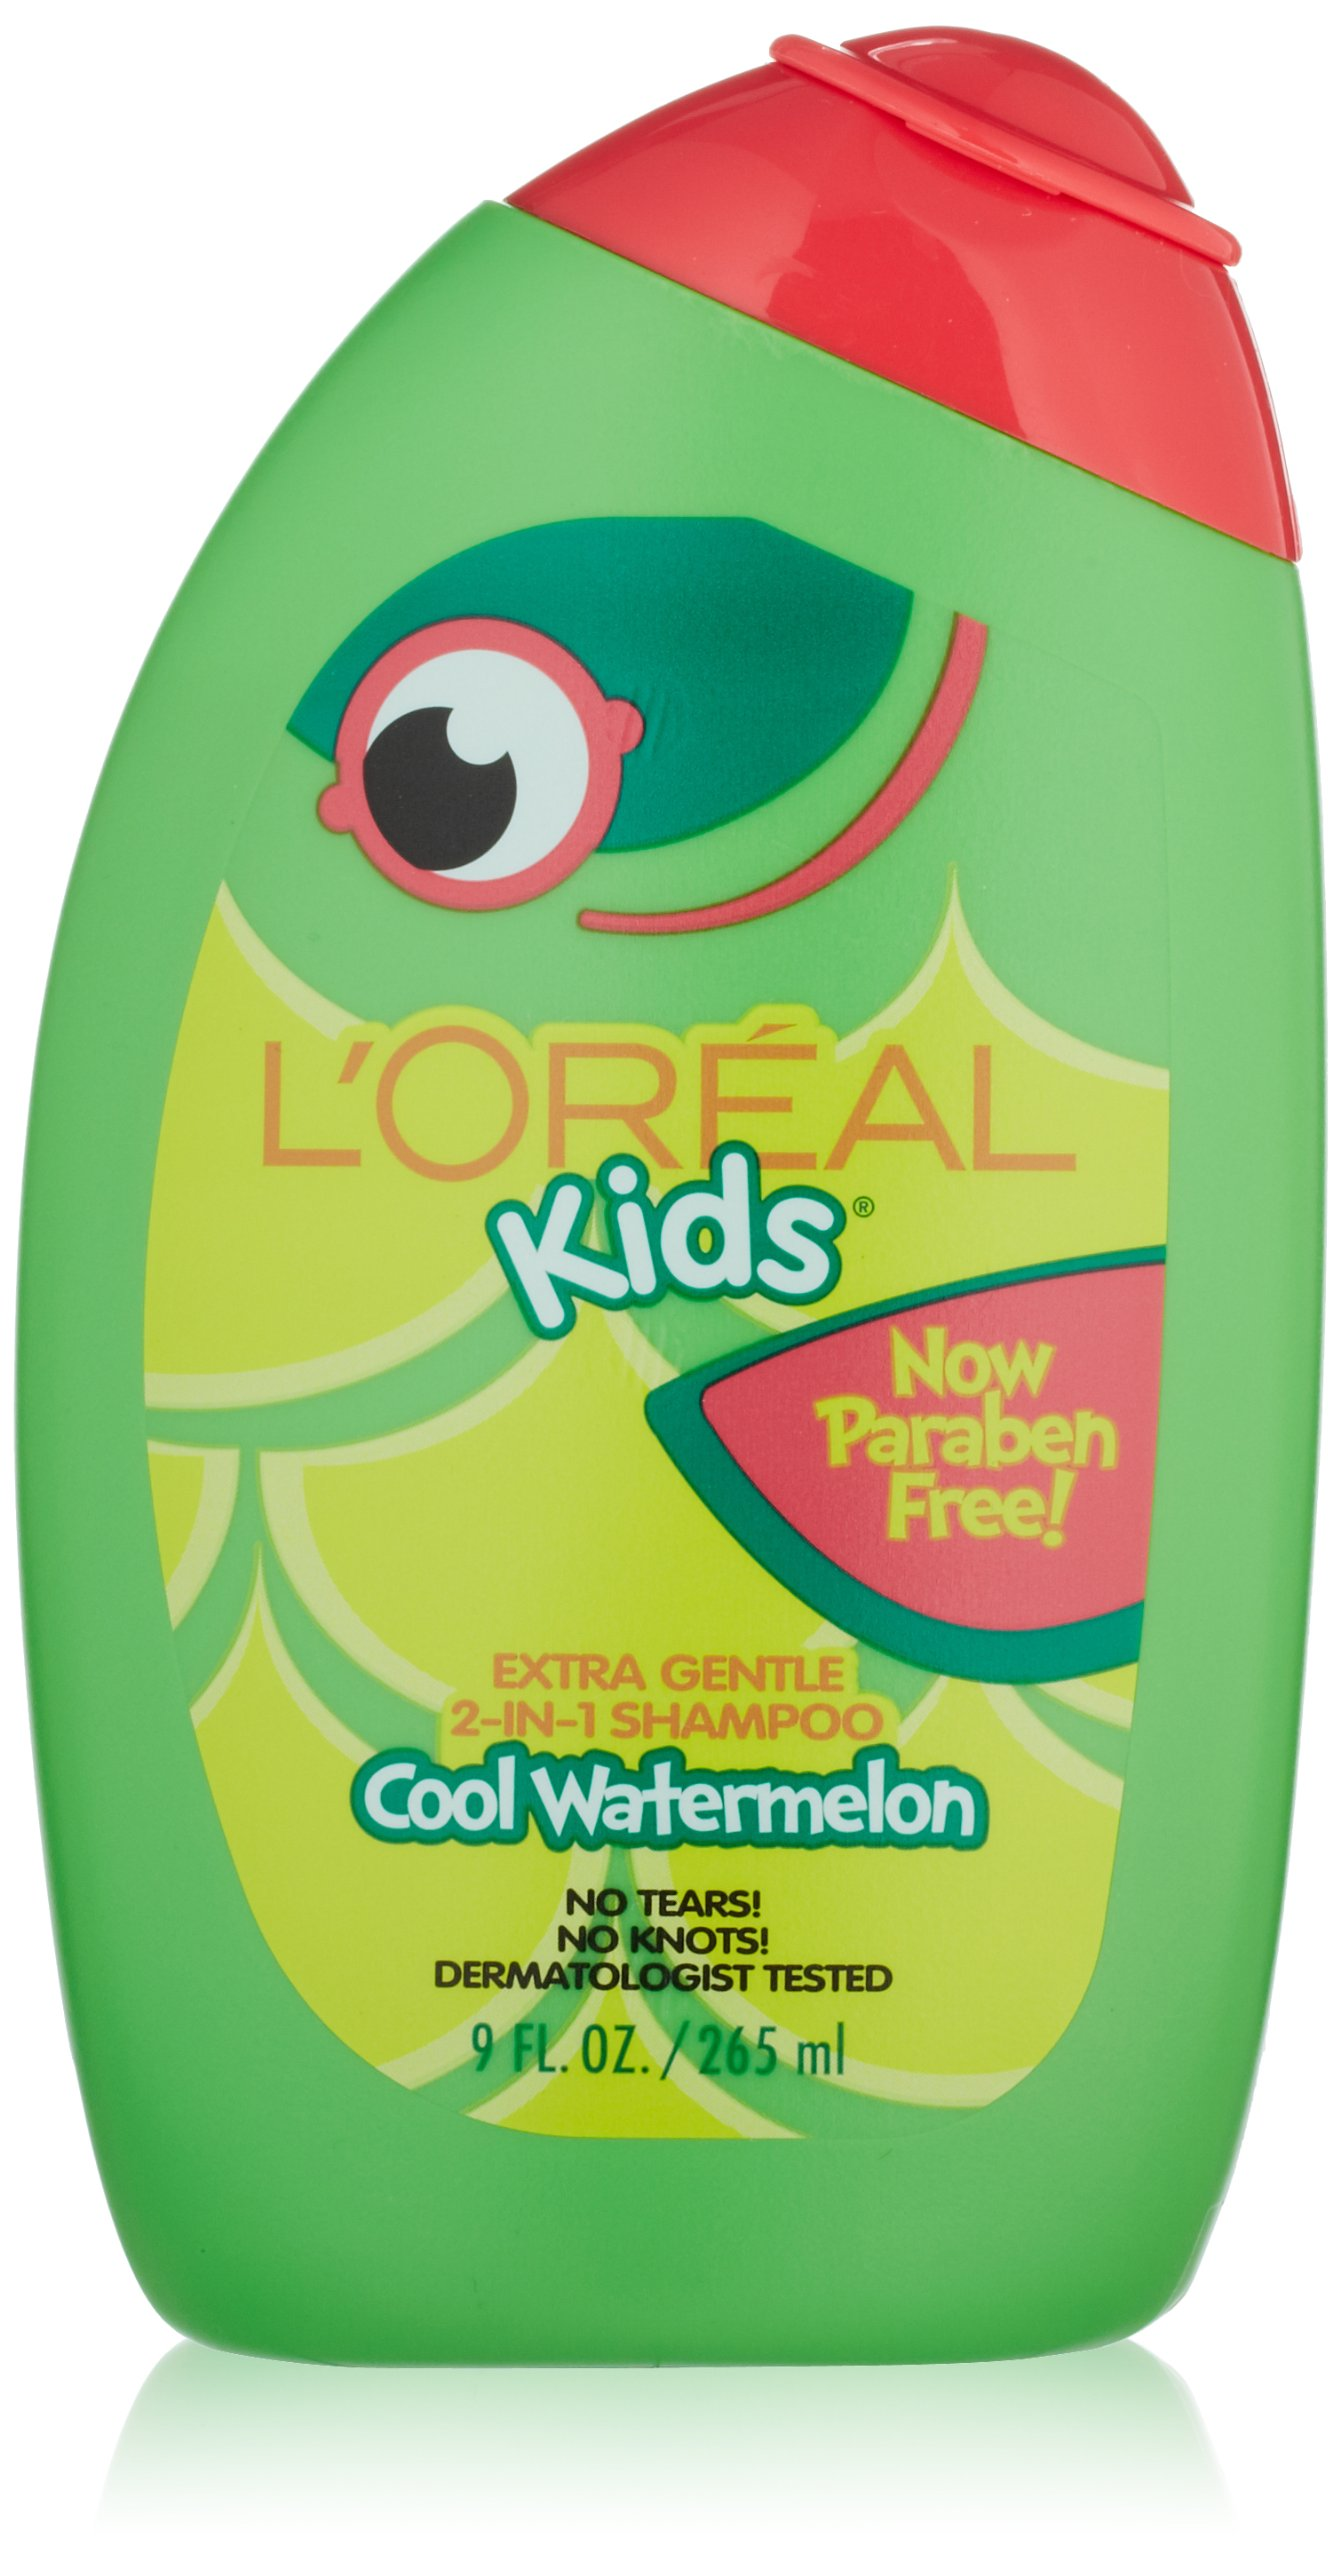 LOreal Extra Gentle Shampoo Watermelon